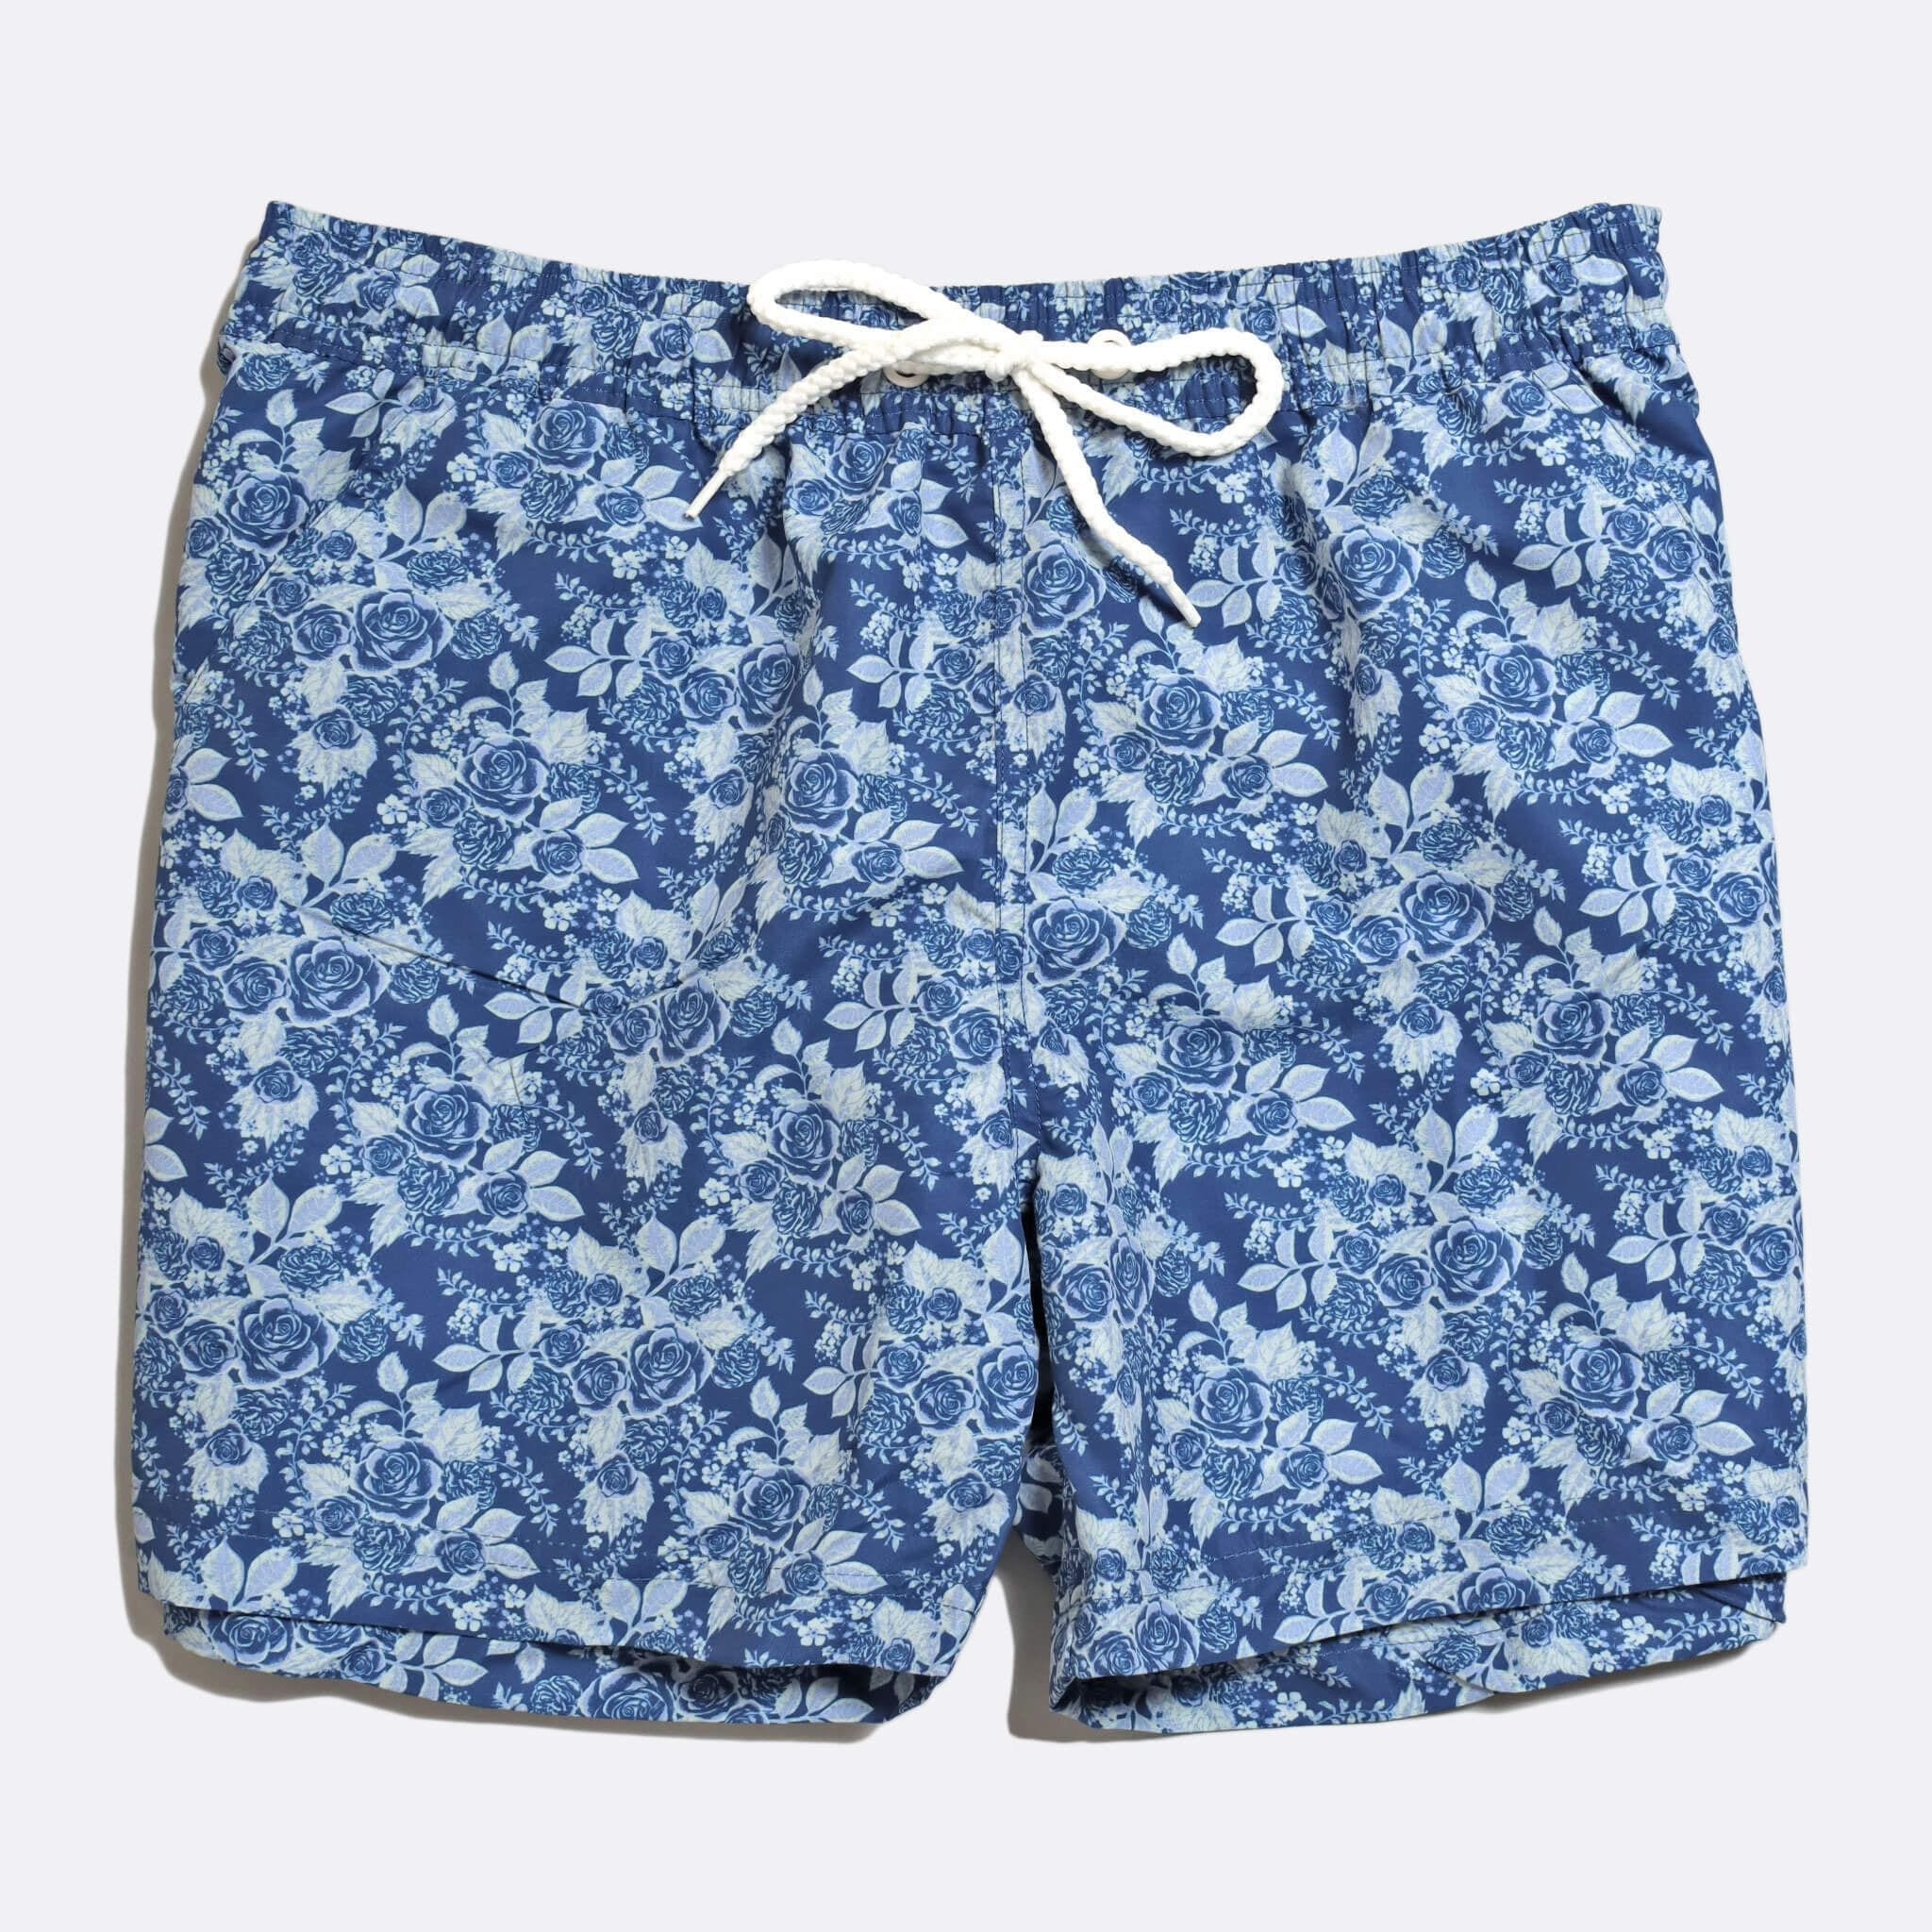 Far Afield x Selfridges Rose Print Swim Shorts a Navy Recycled Plastic Floral Repeat Pattern Fabric Casual